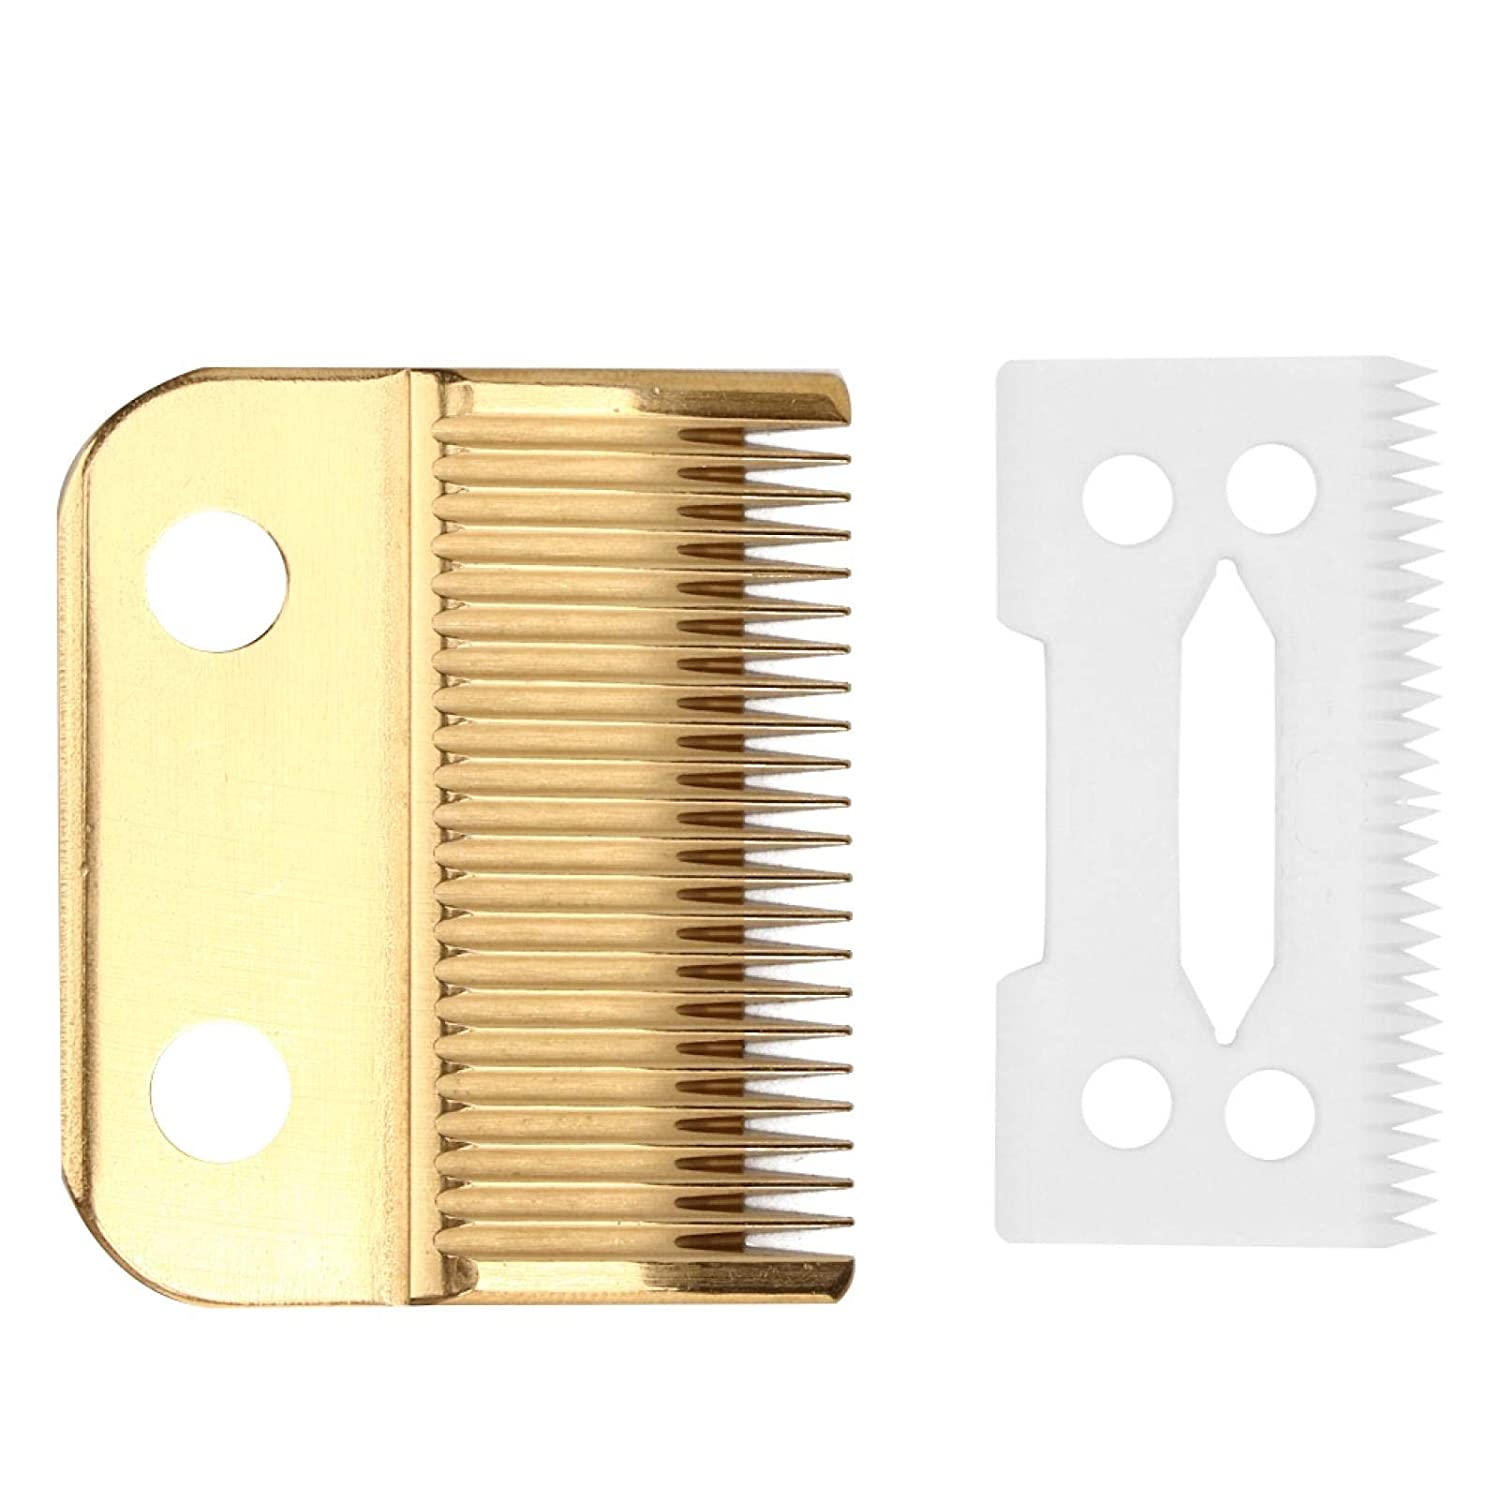 Electric Hair Trimmer Metal Replacement Super-cheap Tool Stainle Cutter Cheap bargain Head